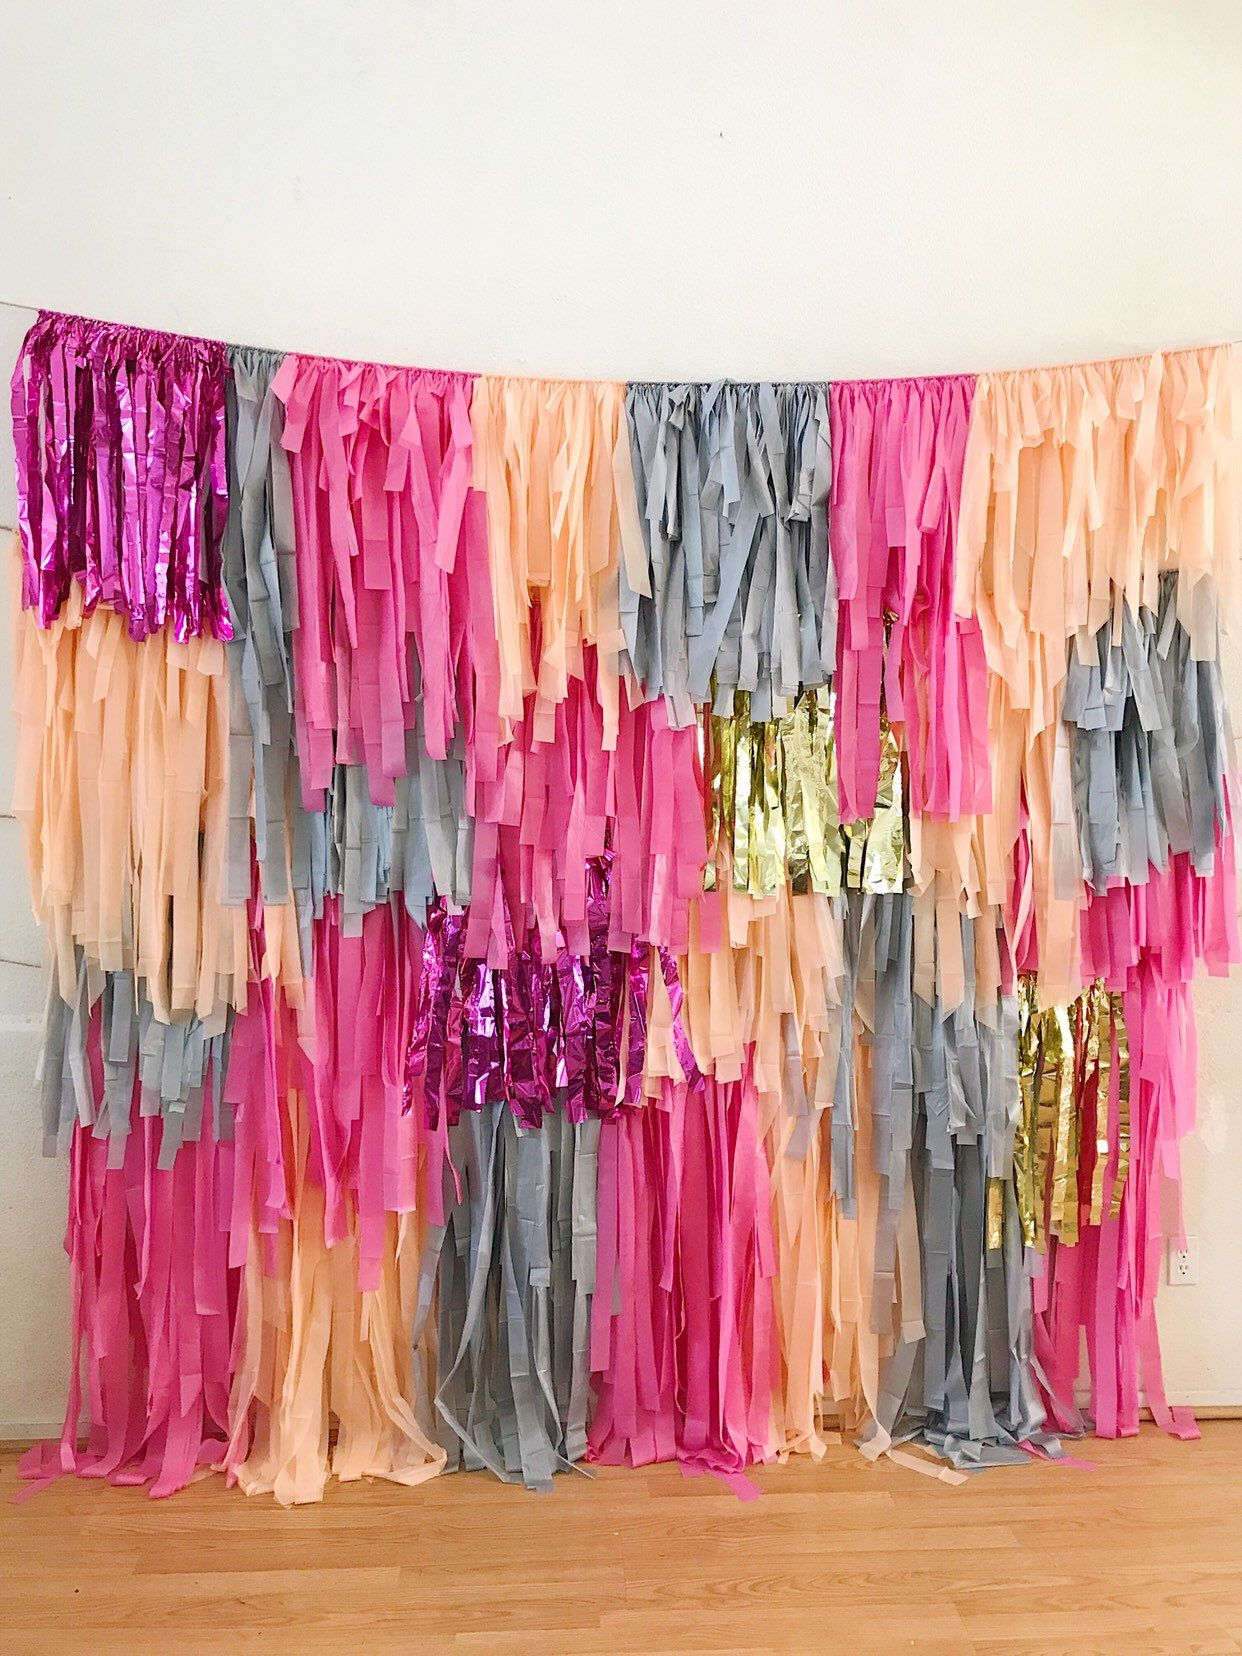 4 Piece - 8 ft wide Tablecloth Fringe Backdrop Wall, Flagtape Backdrop, Fringe Backdrop, Birthday, Party Theme, Customizable